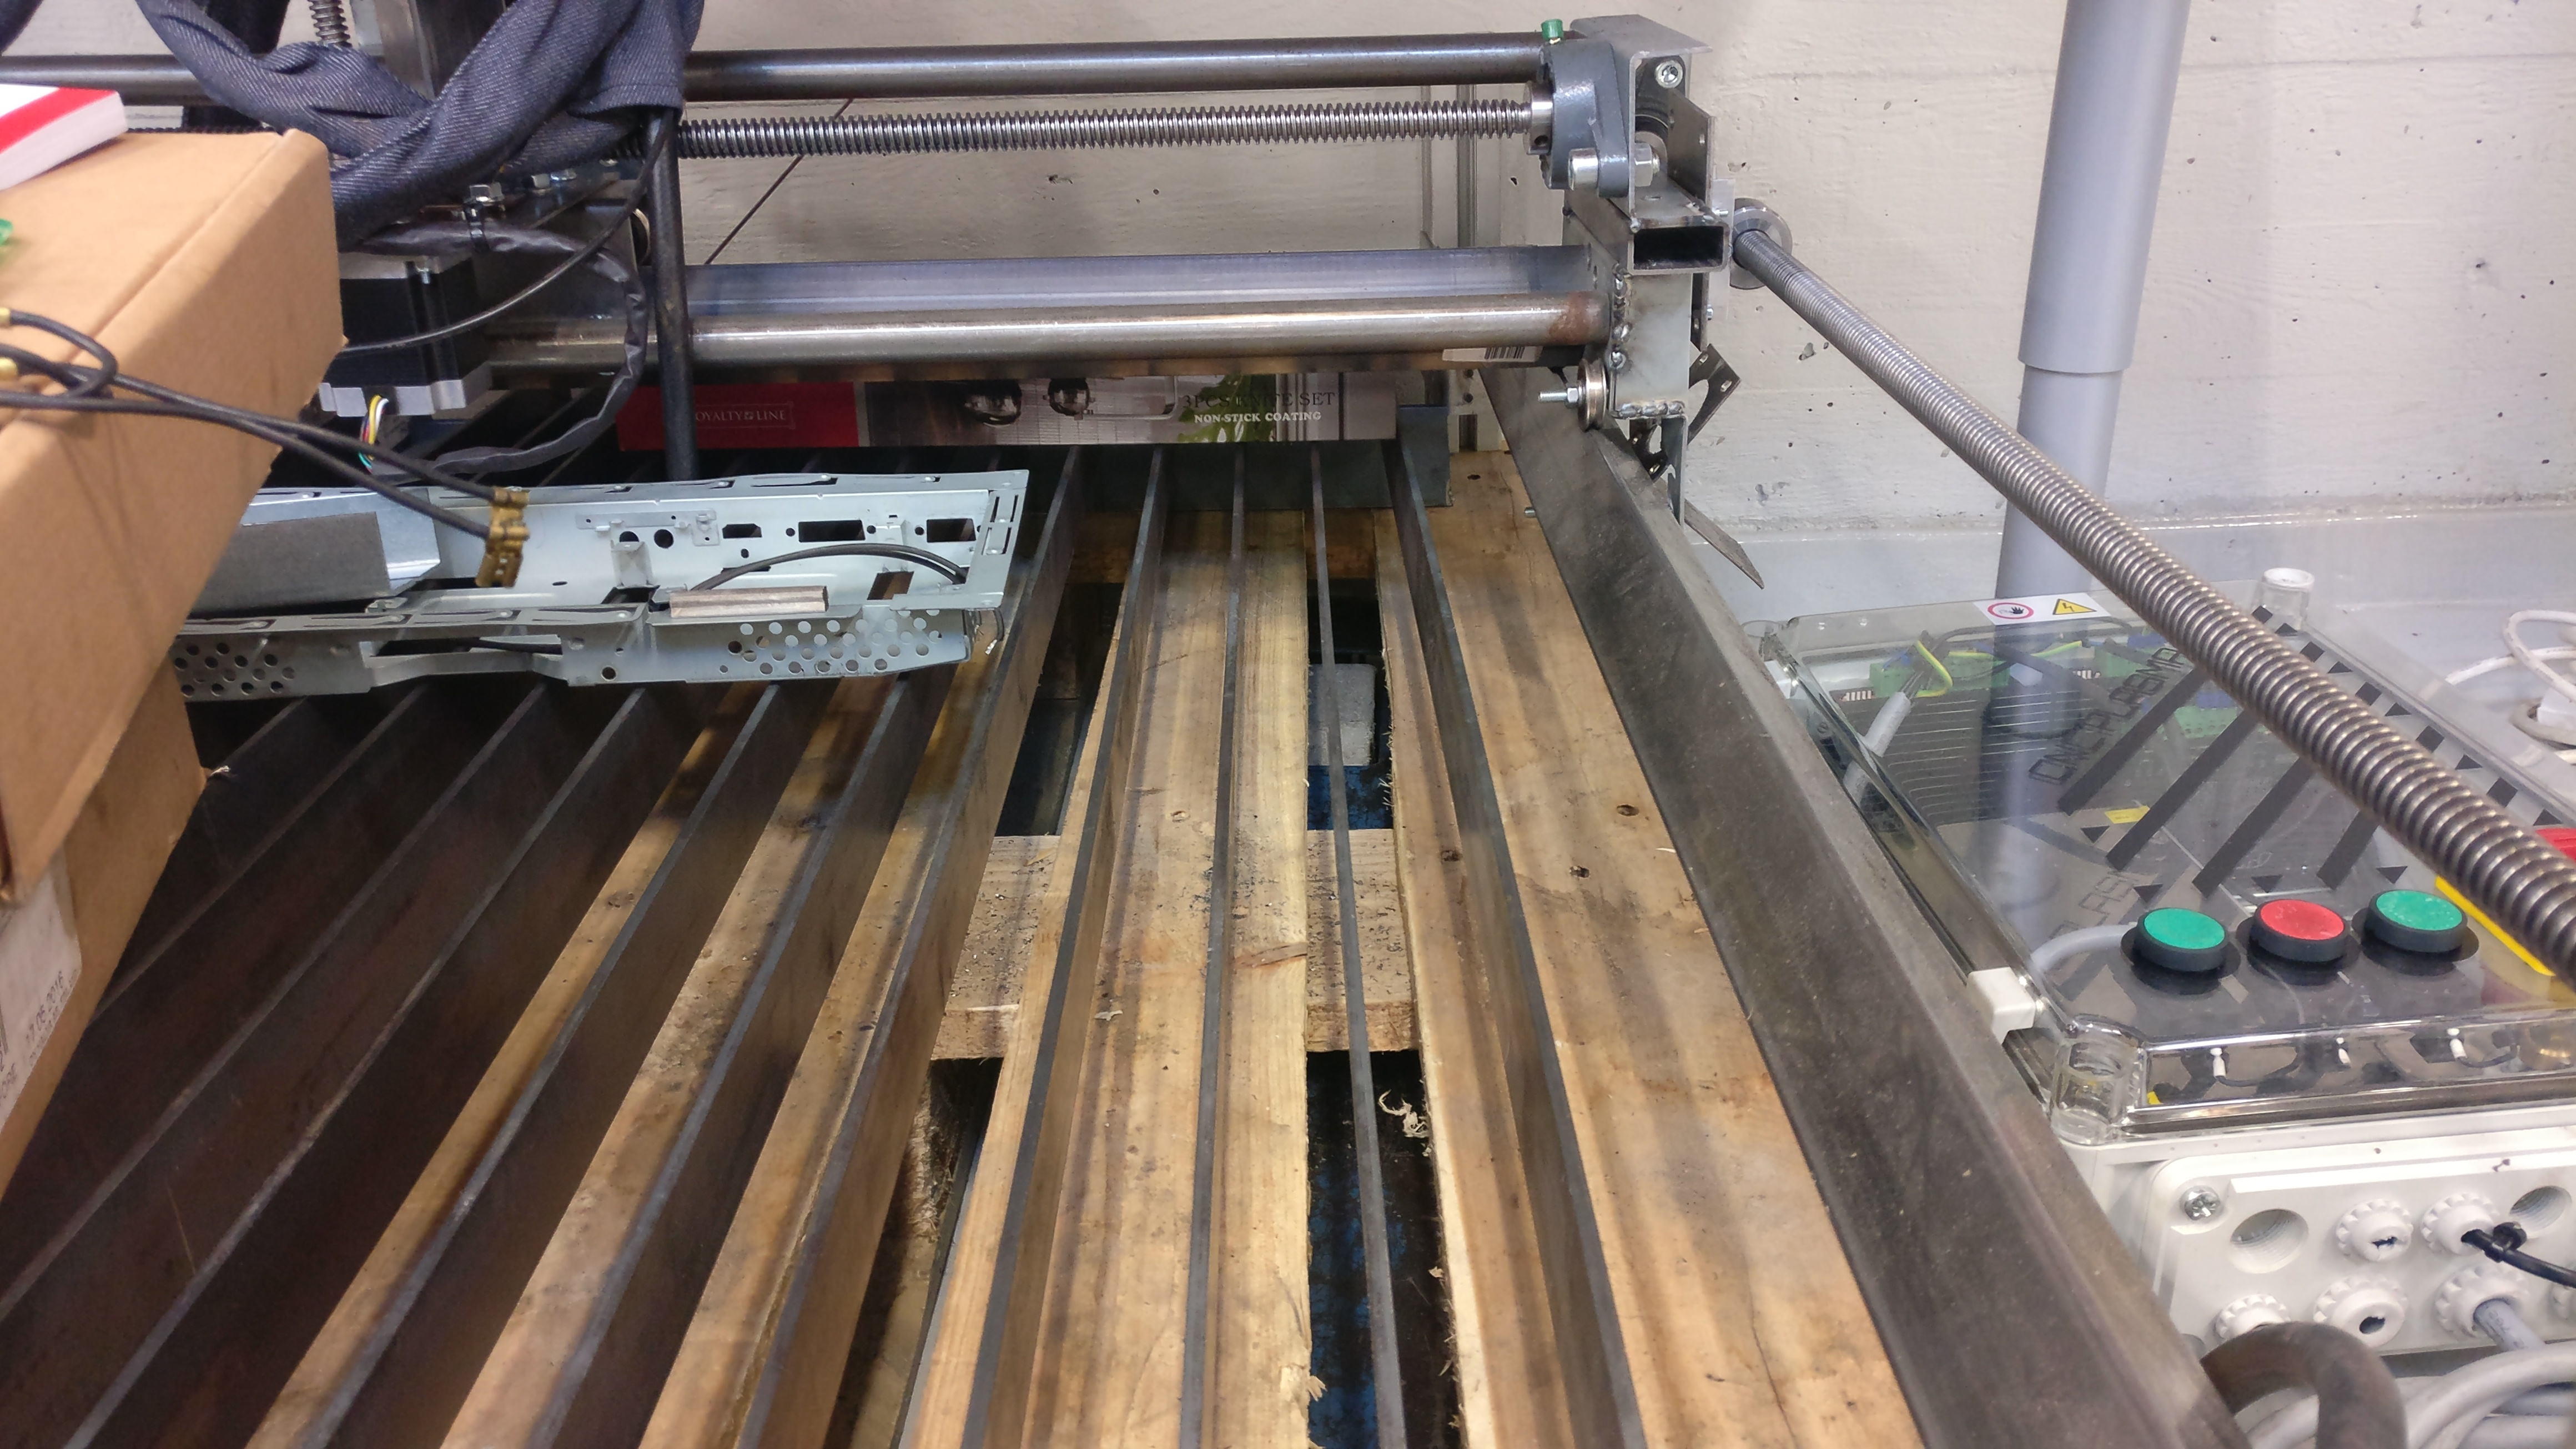 Cnc Plasma Cutter Mechatronics Exercises Aalto University Wiki In Addition Consumables On Diy Schematic The Bed Was Made Using 7 X 5x50 Mm Steel Bar That Were 2 Meters Long And Cut To 1 Meter Sections So 14 Pieces Are Obtained For